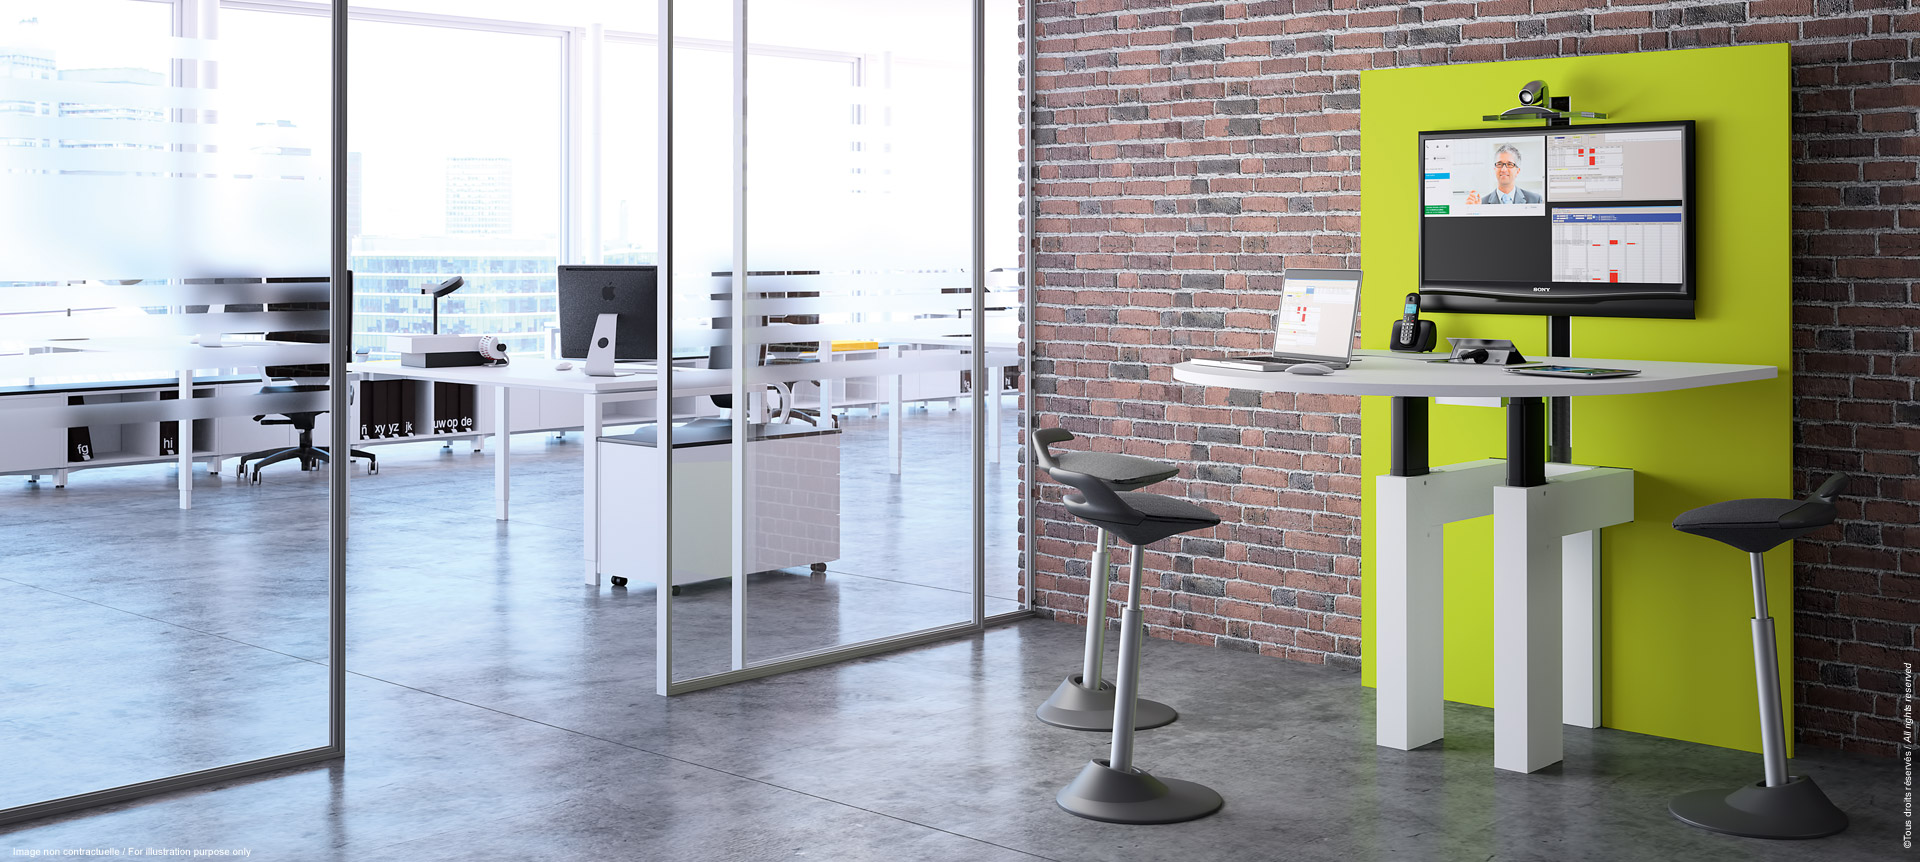 I-Share - Multimedia table for meeting or video-conference